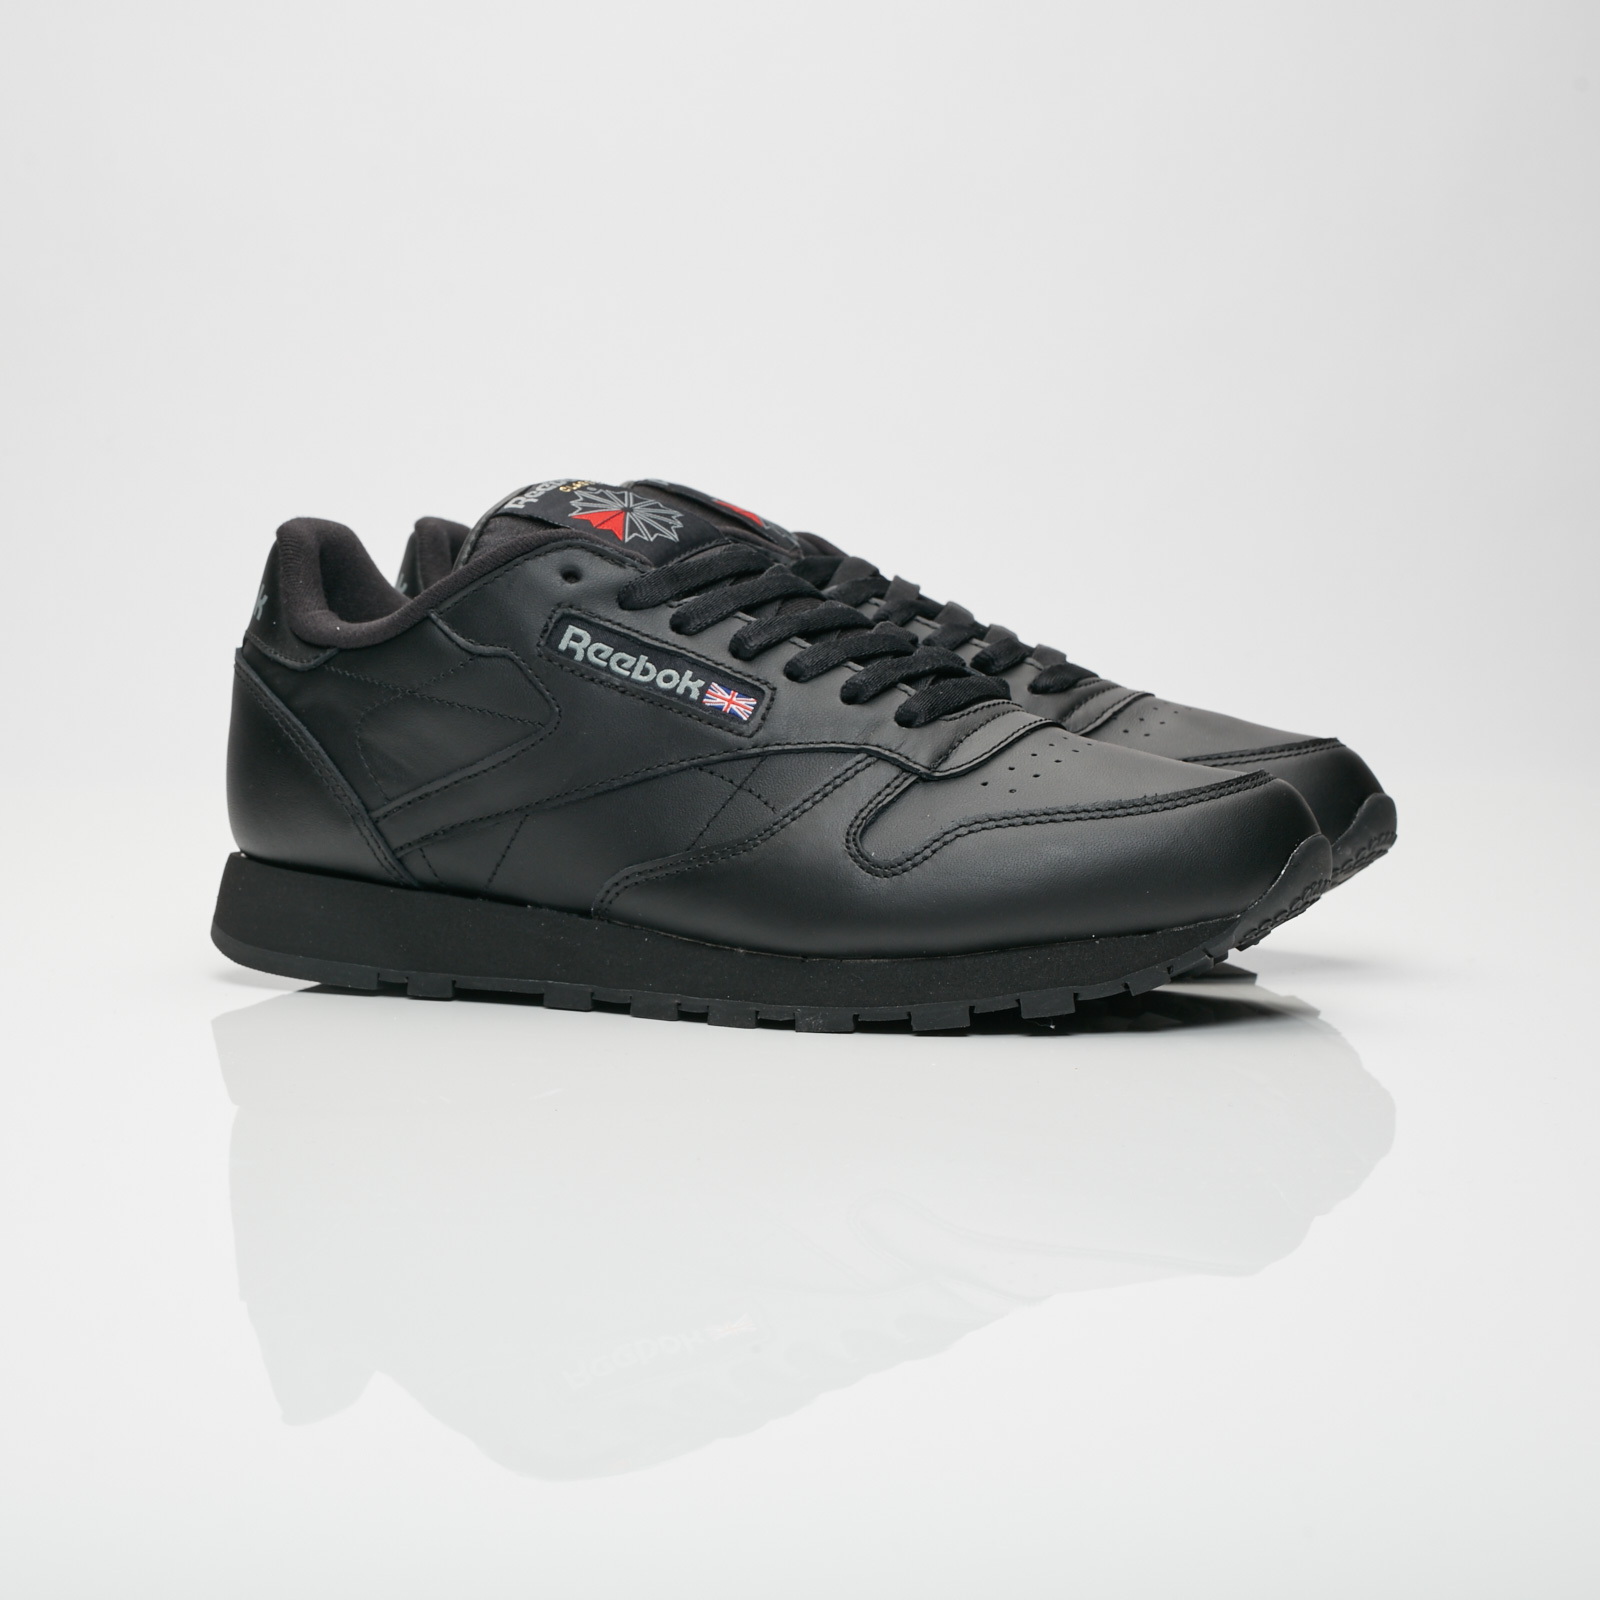 d9c03c176860 Reebok Classic Leather - 2267 - Sneakersnstuff